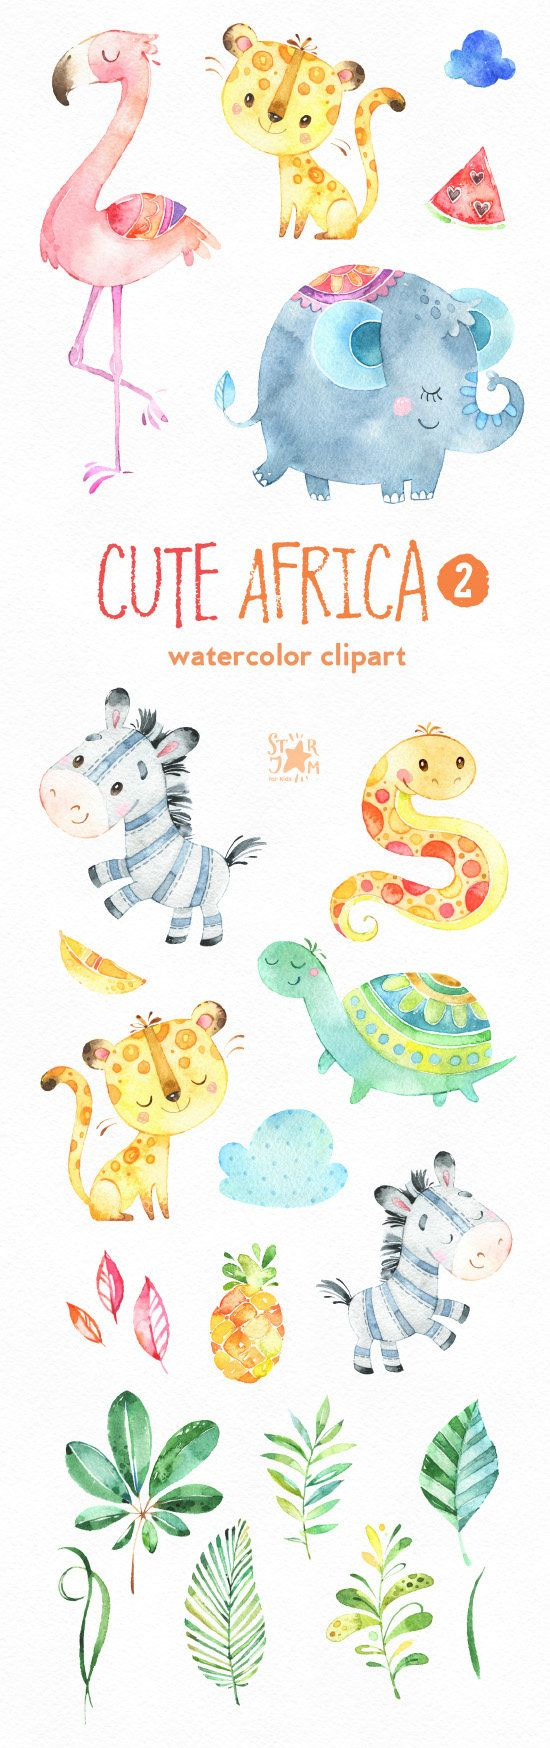 This part 2 of Cute African animals watercolor set is just what you needed for the perfect invitations, craft projects, paper products, party decorations, printable, greetings cards, posters, stationery, scrapbooking, stickers, t-shirts, baby clothes, web designs and much more. :::::: DETAILS :::::: This collection includes: - 21 Images in separate PNG files, transparent background, size approx.: 12-3in (3600-900px) 300 dpi RGB Part 1 of Cute Africa https://www.etsy.com/li...